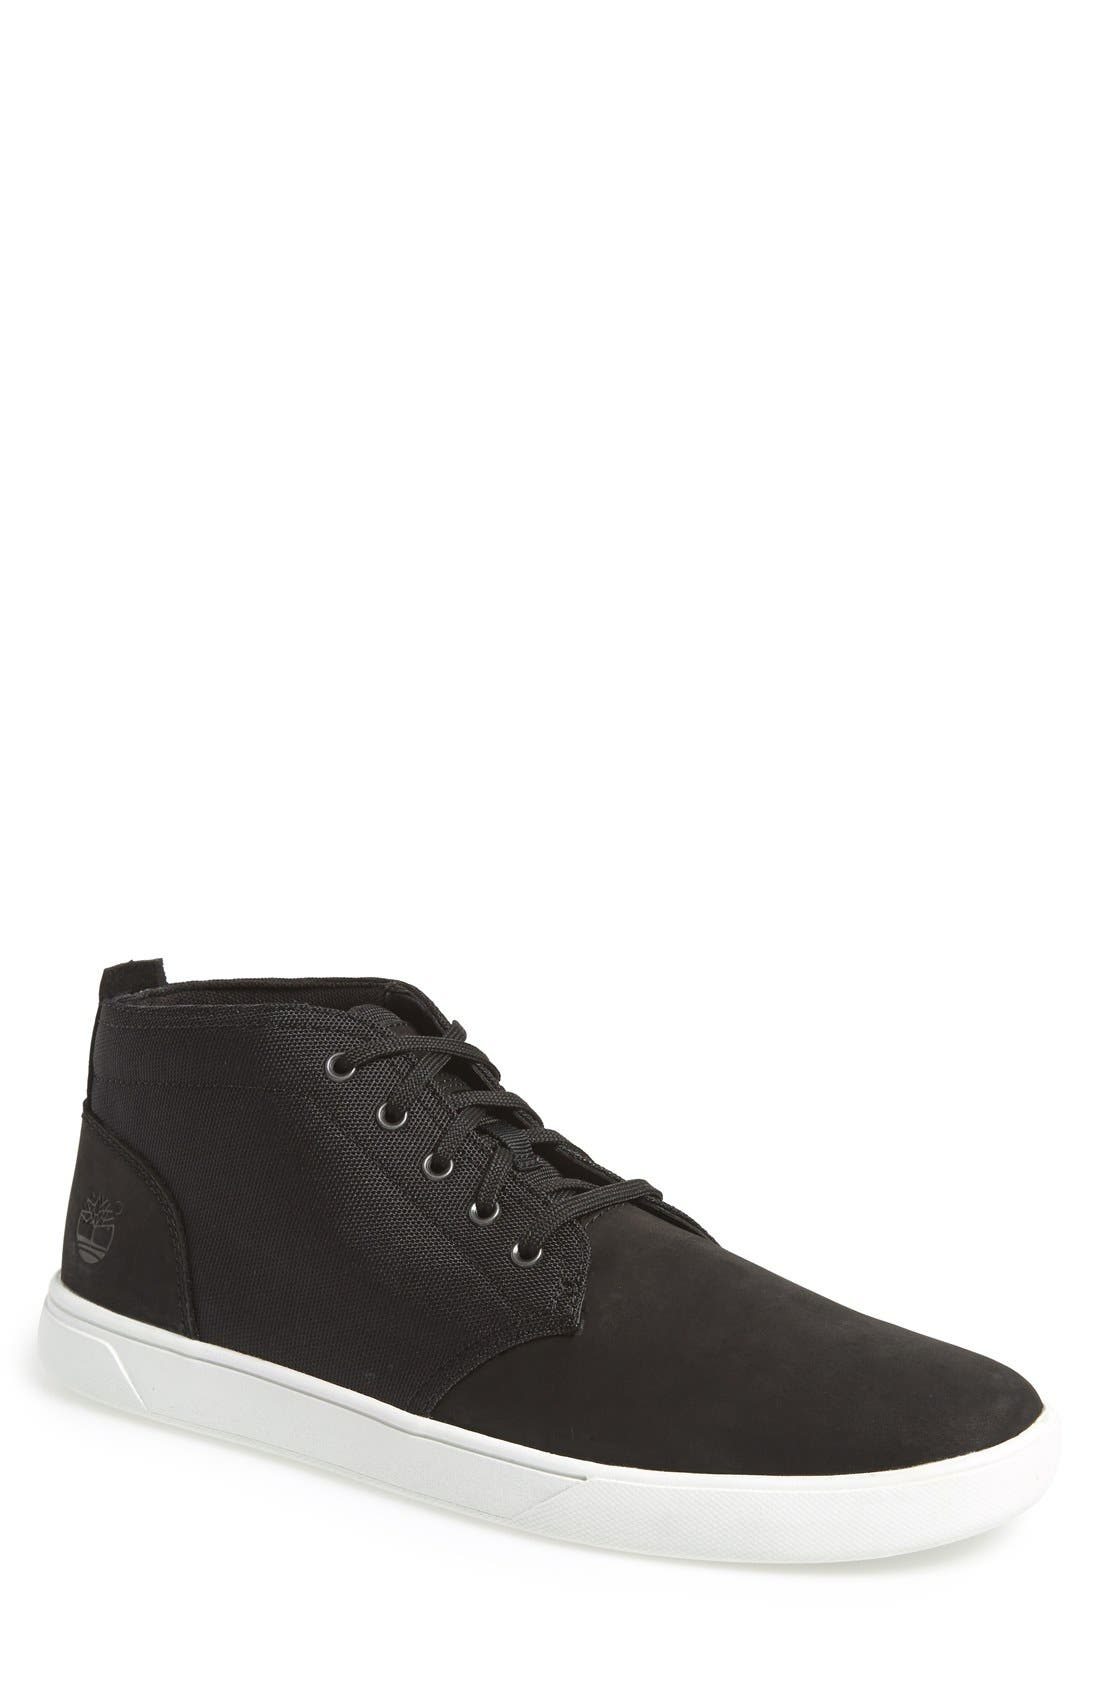 Earthkeepers<sup>™</sup> 'Groveton' Chukka Sneaker,                         Main,                         color, BLACK NUBUCK/ CANVAS